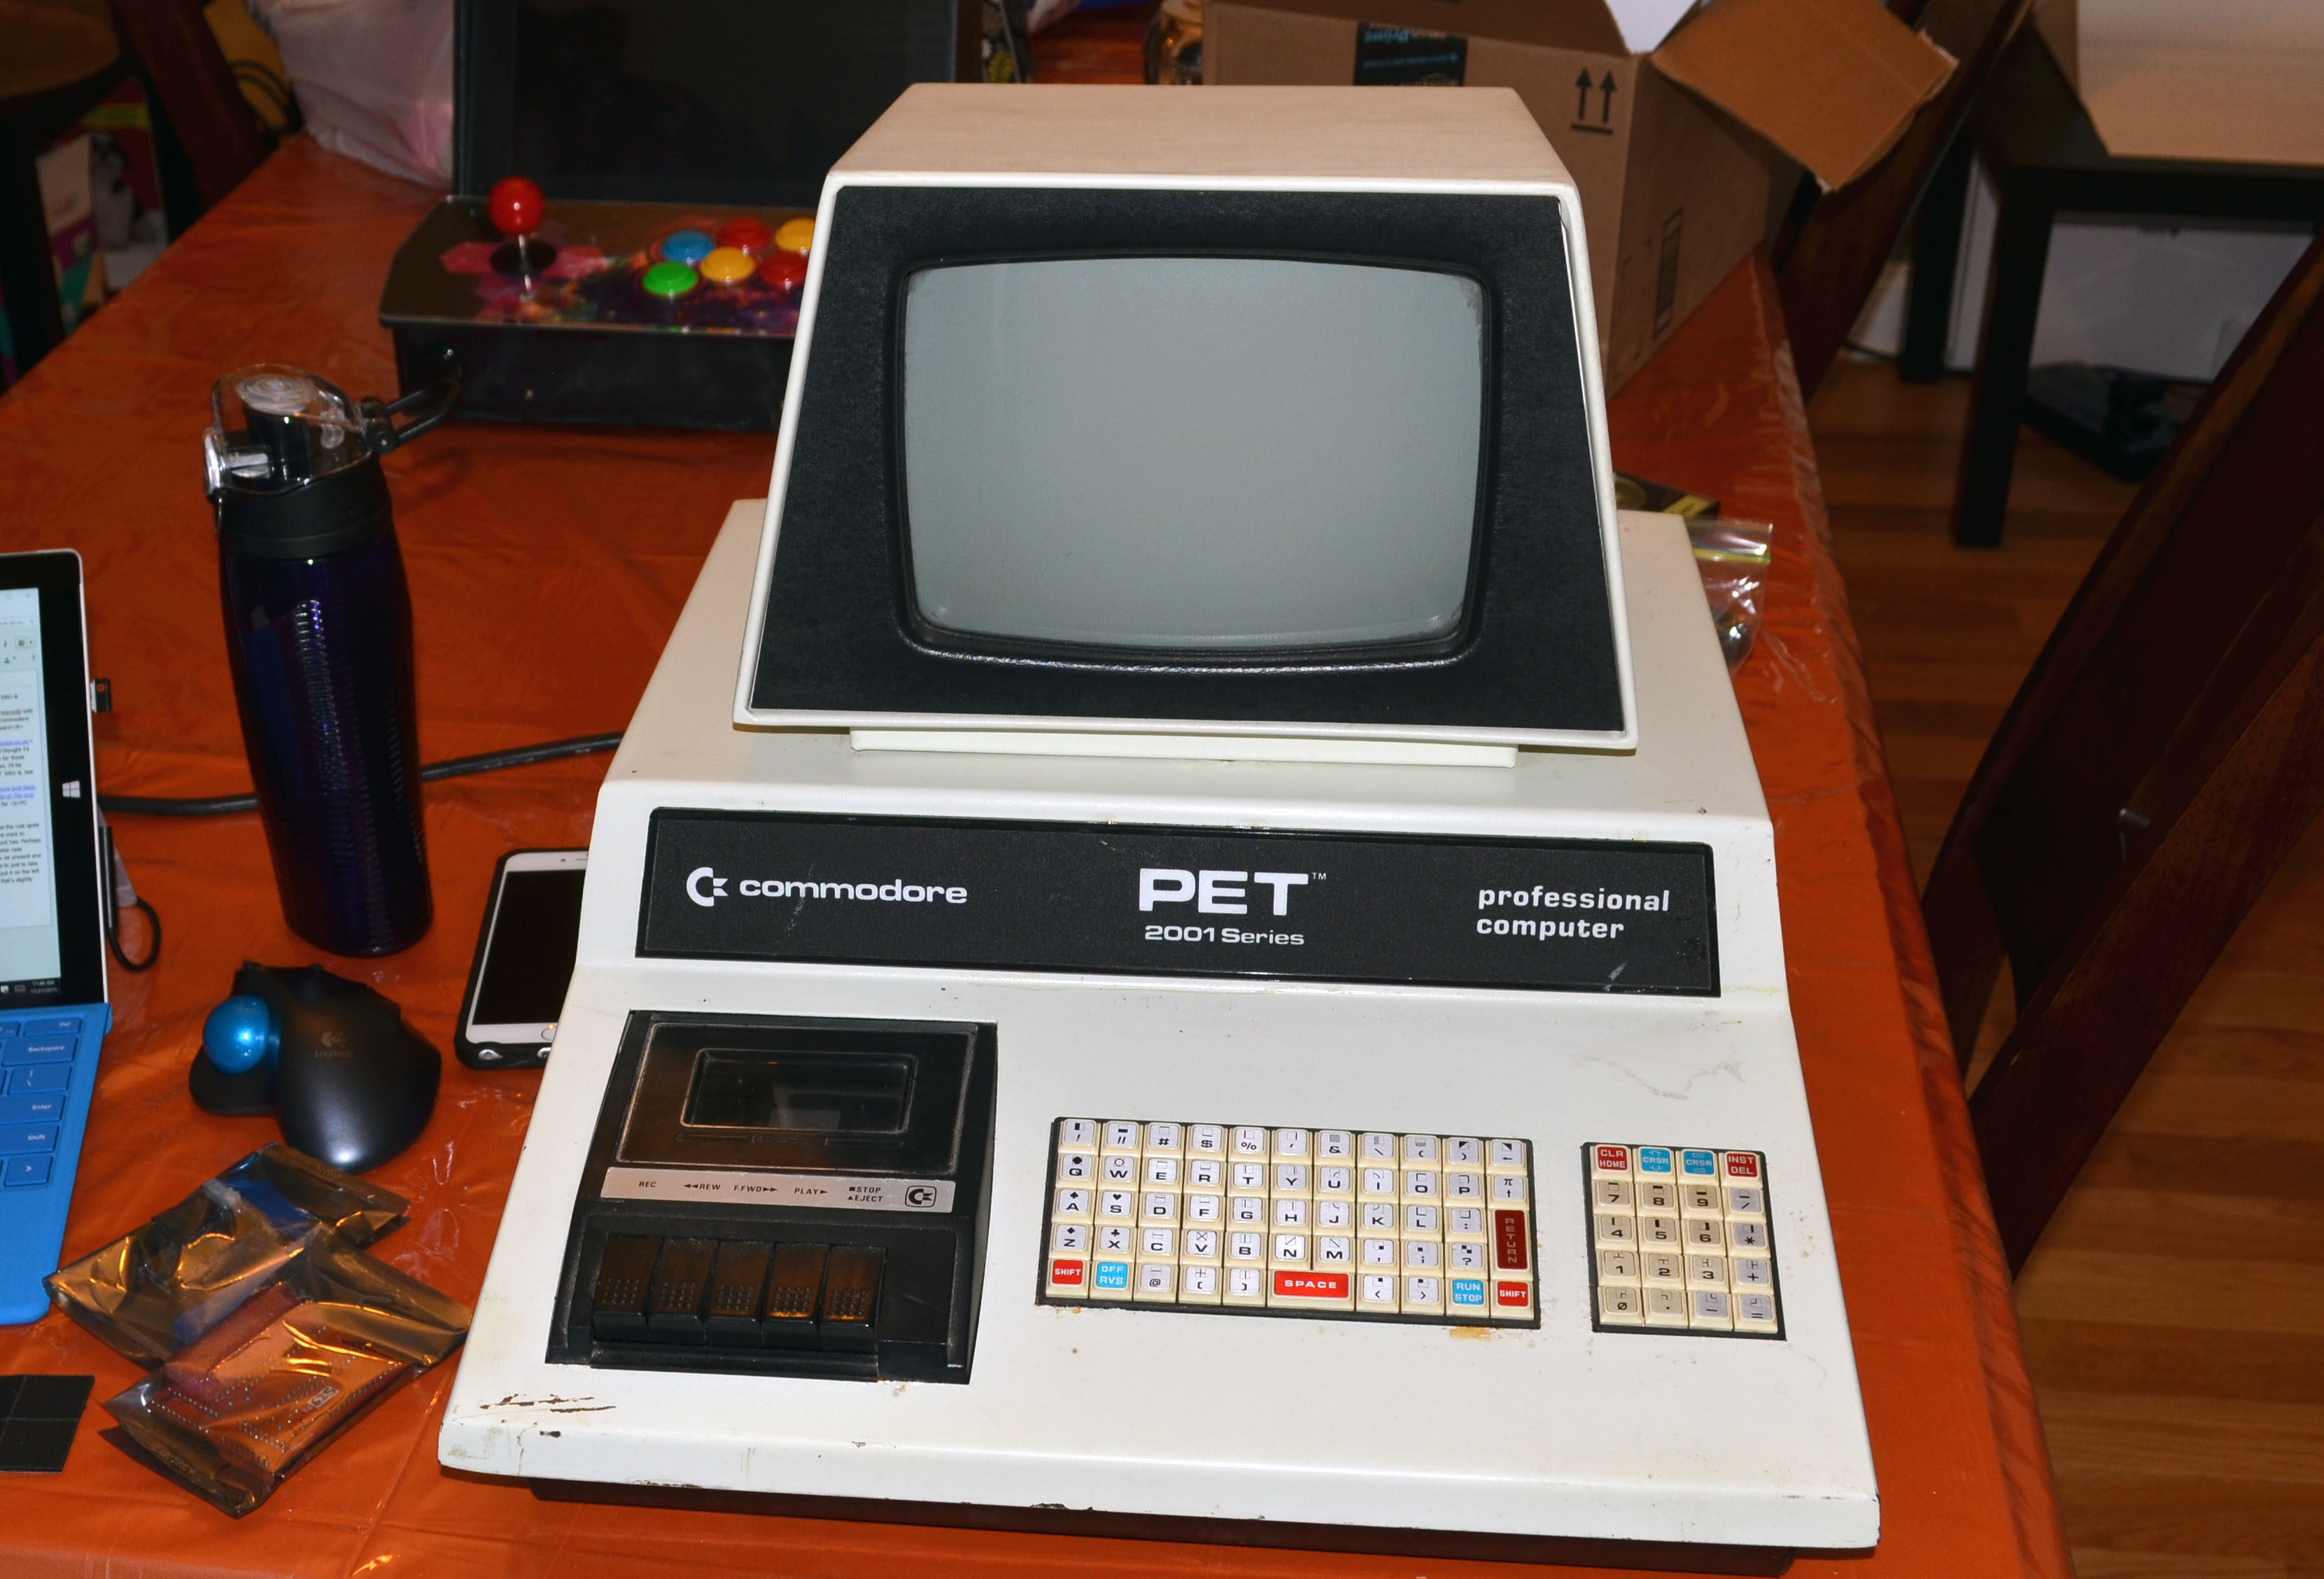 Upgrading the Commodore PET 2001-8: Part 1